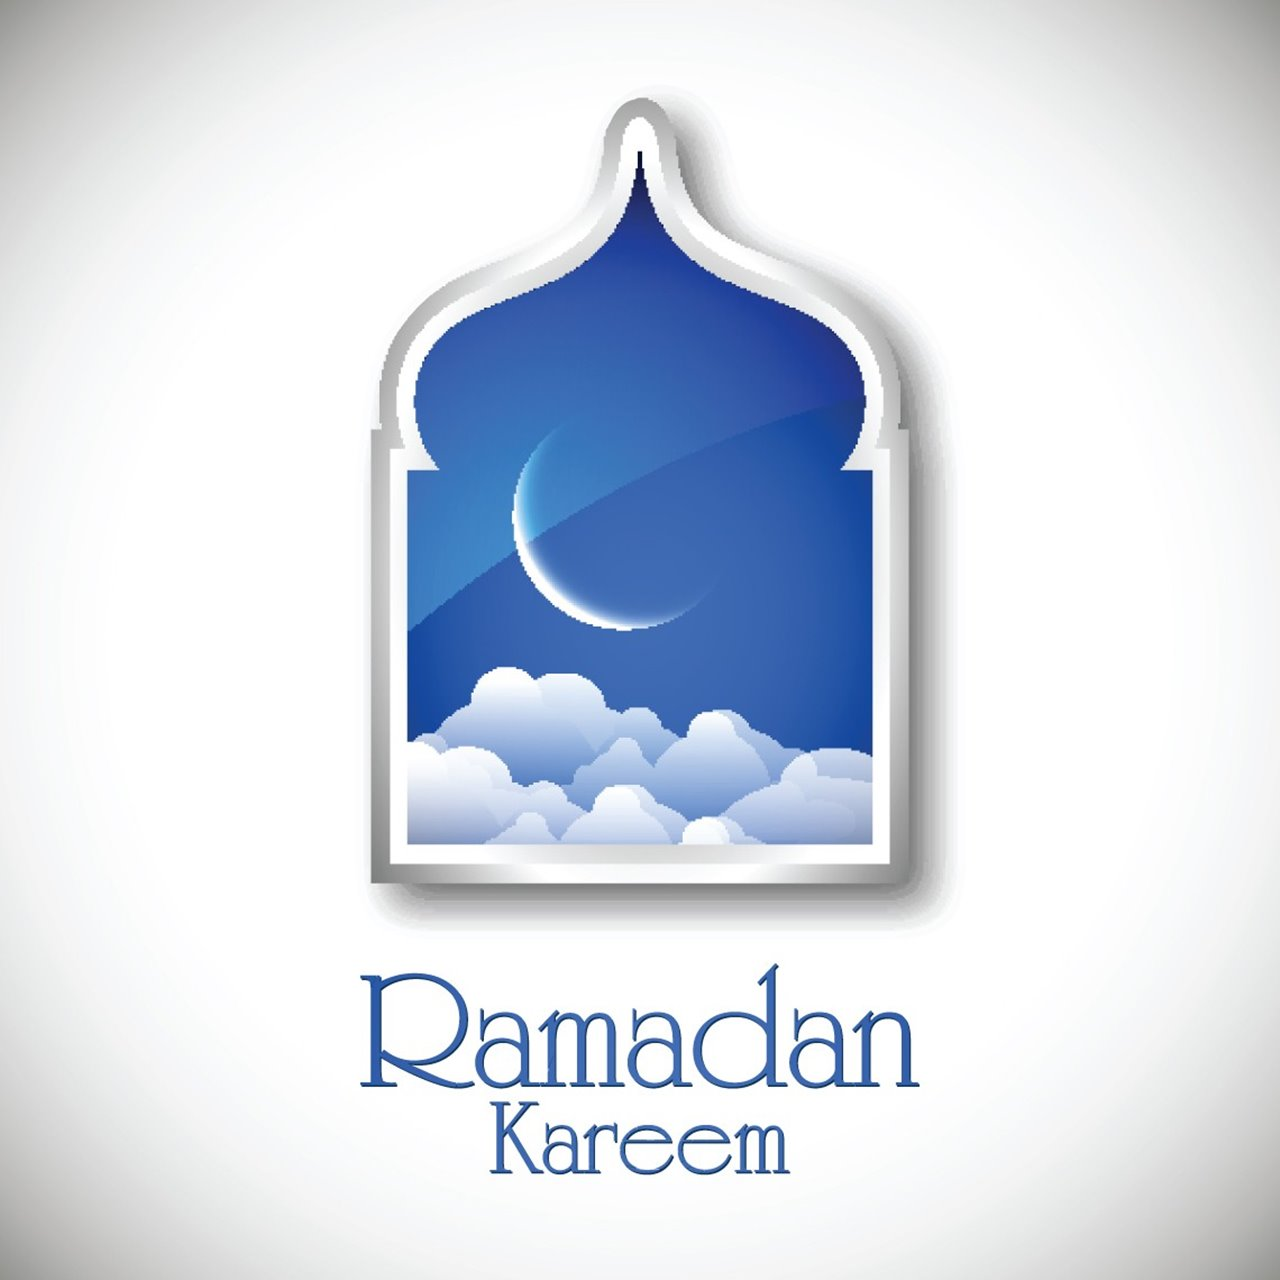 Wishing Happy Ramadan Wallpapers amp Cards 2015